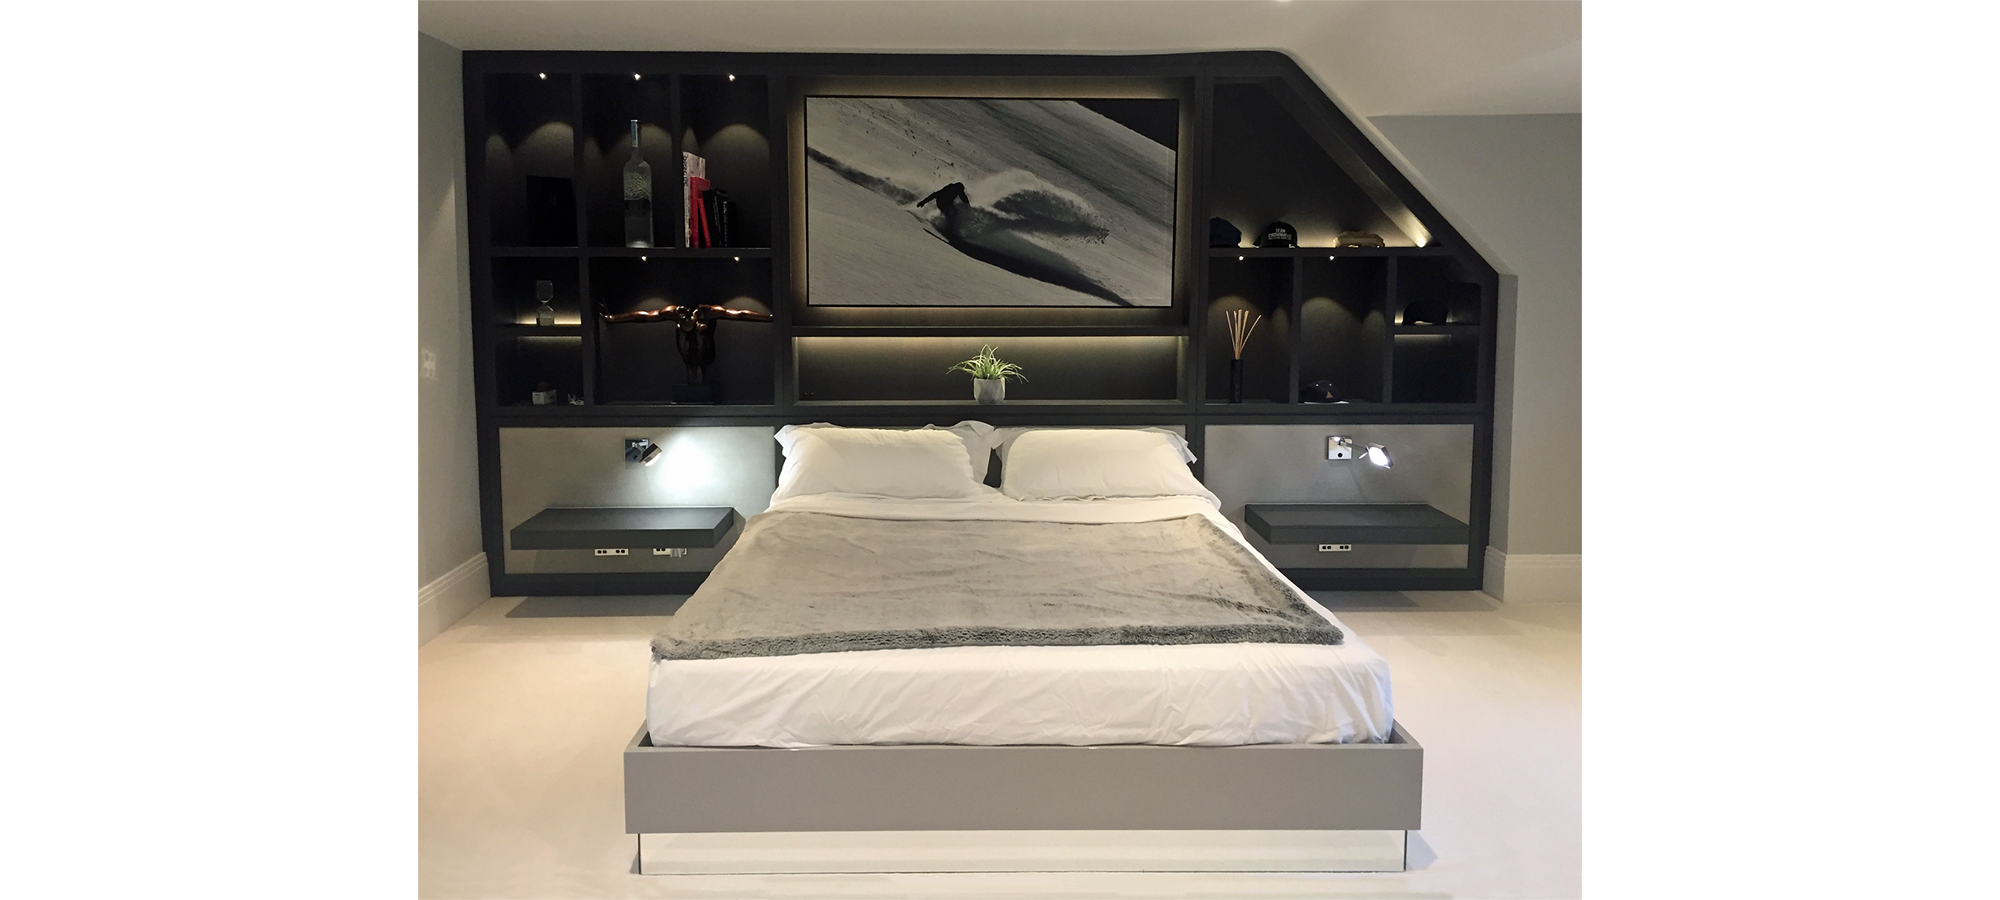 Fitted wall unit with integrated headboard